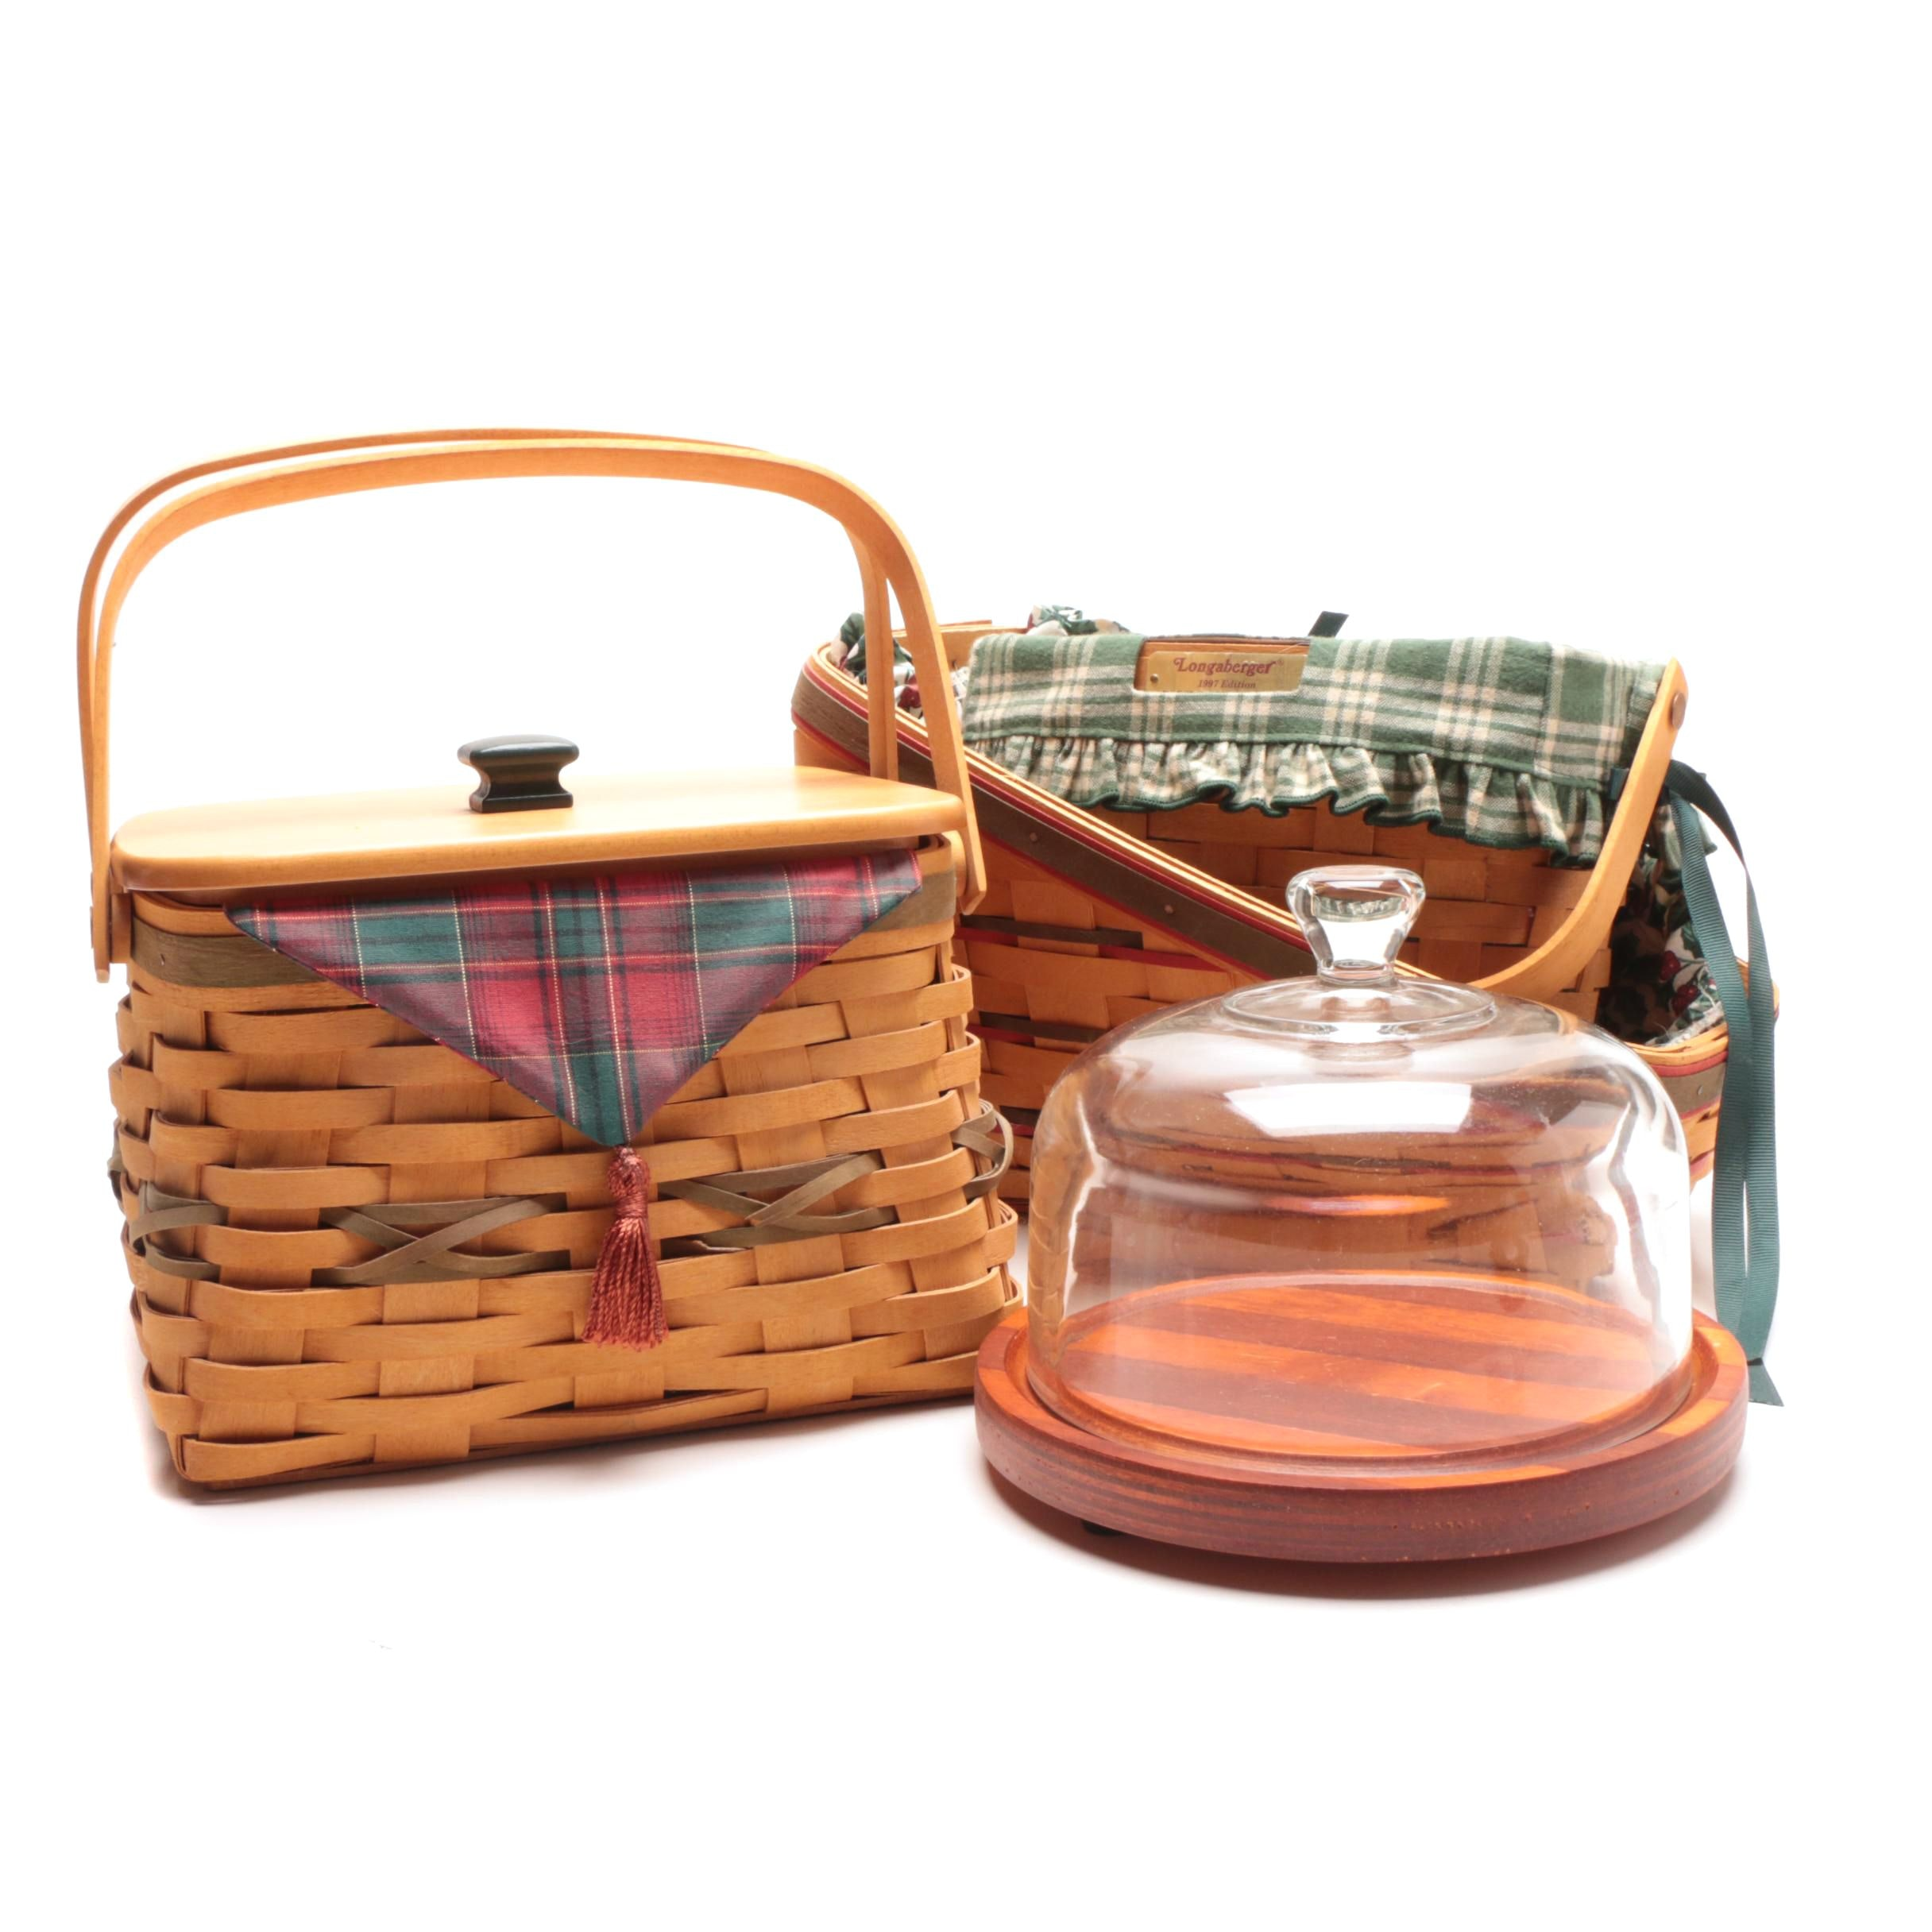 Three Longaberger Baskets with Cheese Plate